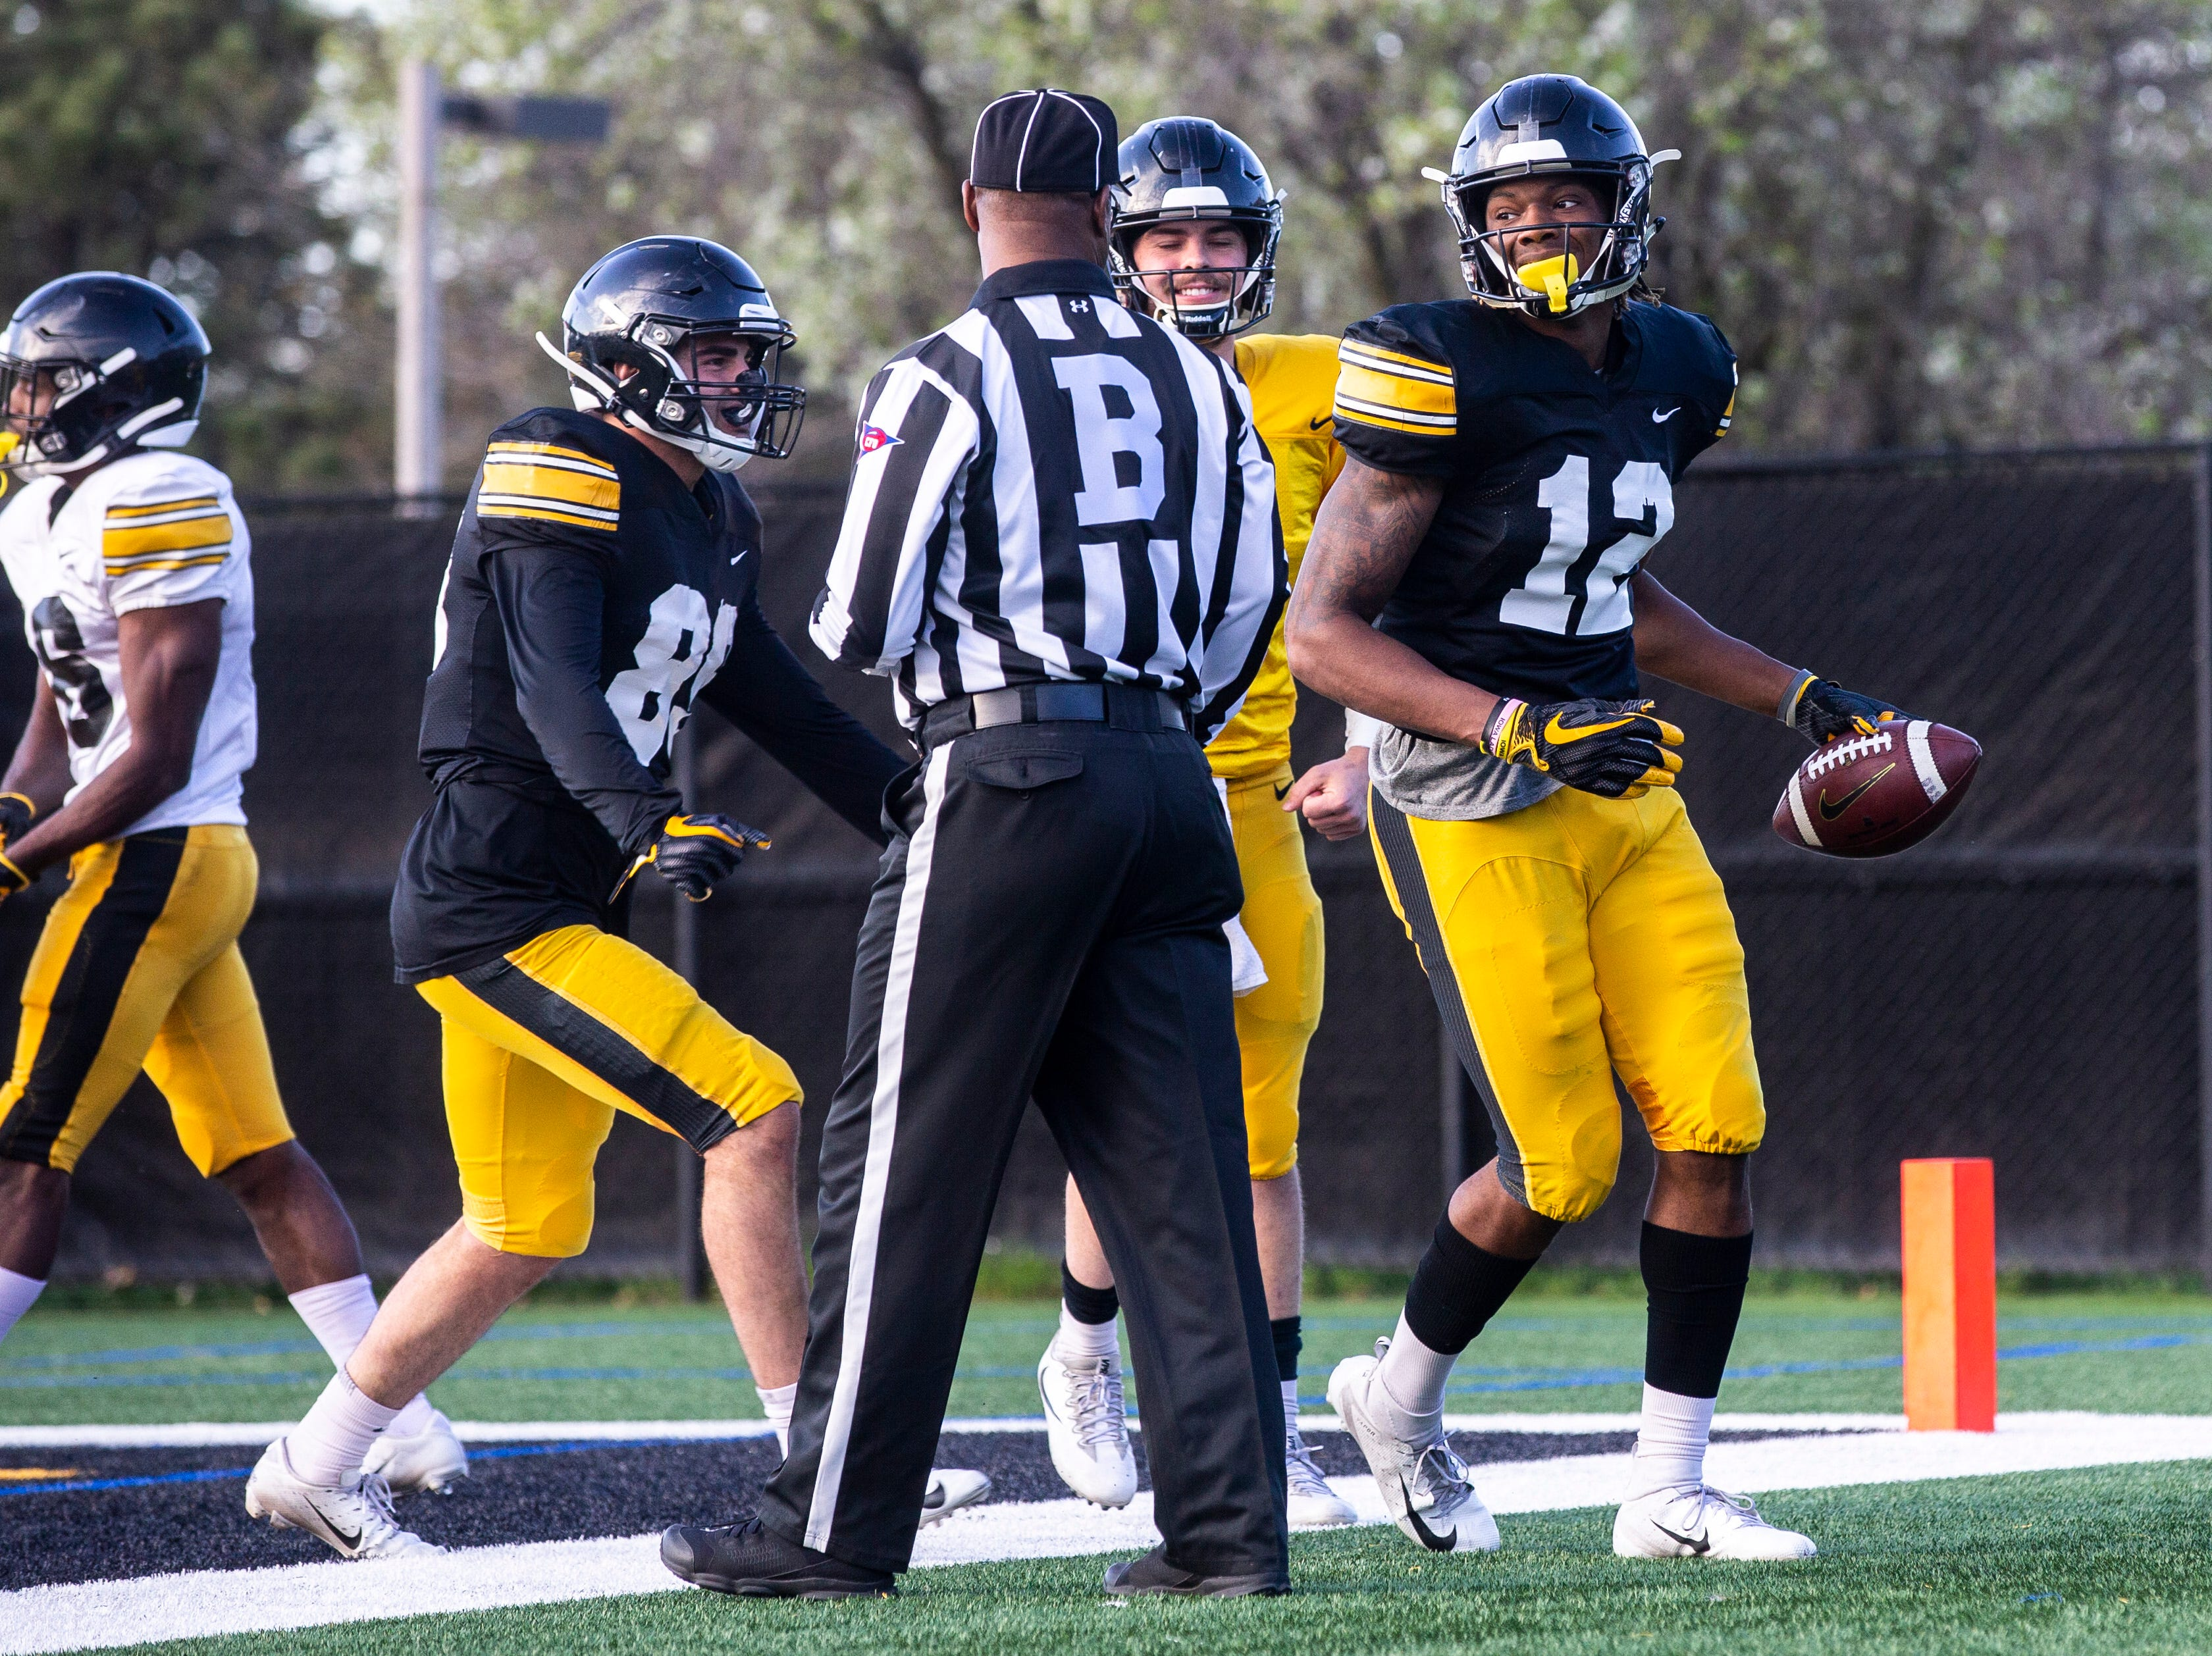 Iowa wide receiver Brandon Smith (12) gets embraced by teammates Nico Ragaini (89) and quarterback Peyton Mansell after catching a touchdown pass during the final spring football practice, Friday, April 26, 2019, at the University of Iowa outdoor practice facility in Iowa City, Iowa.